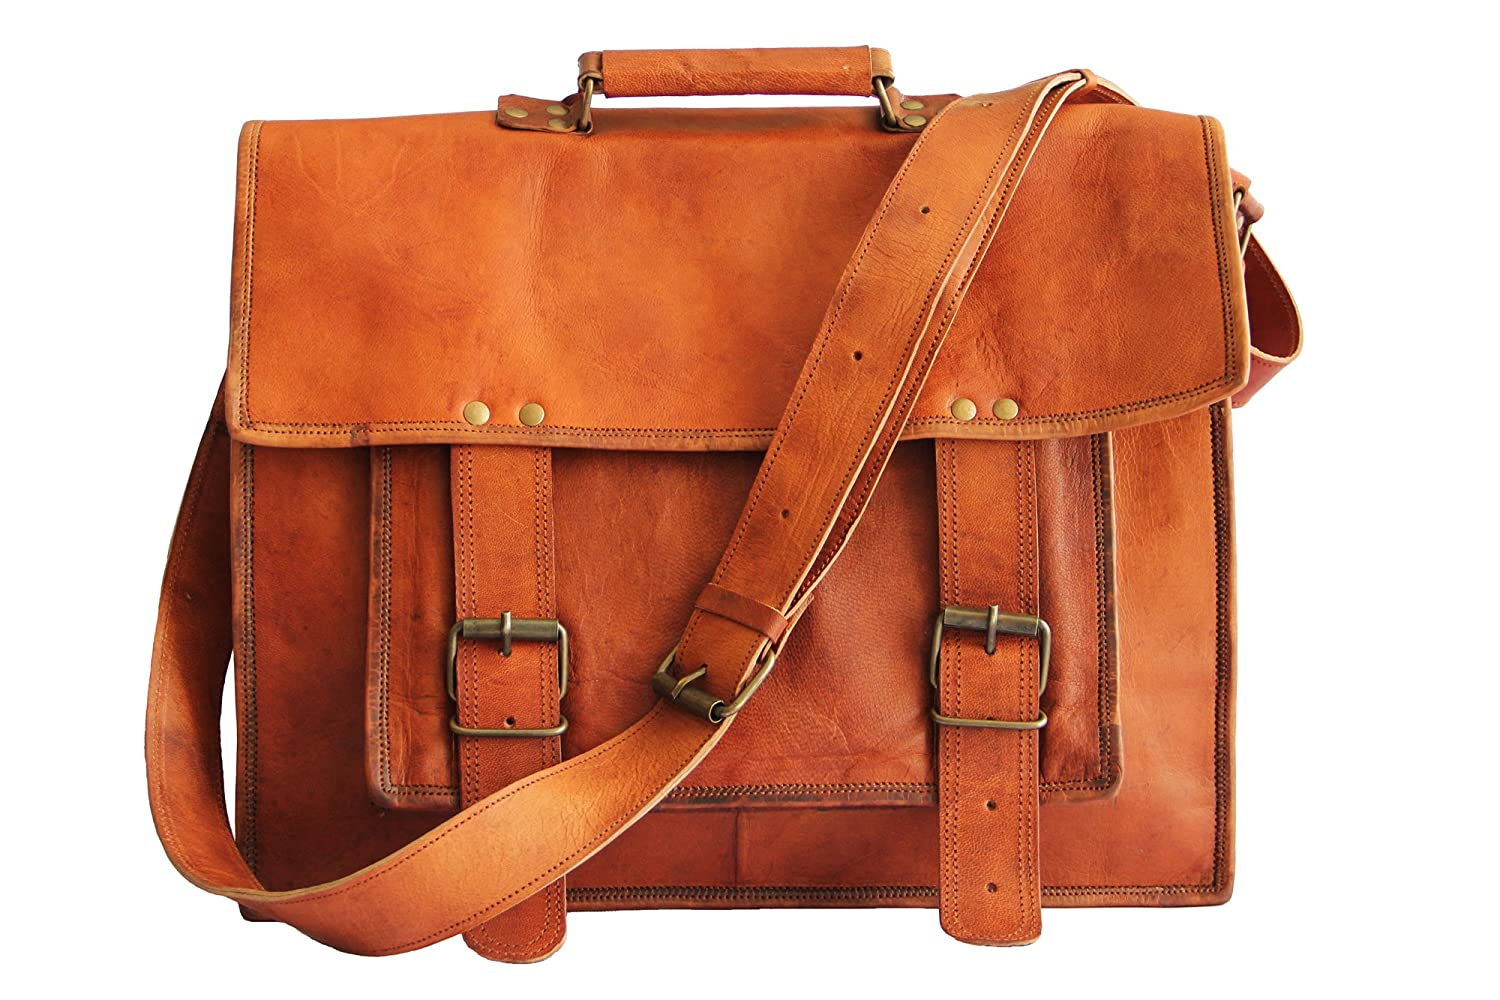 18 Inches Brown Leather Cross-body Messenger Bag/Leather Laptop Bag for Men/women Syon FBA_BC21327